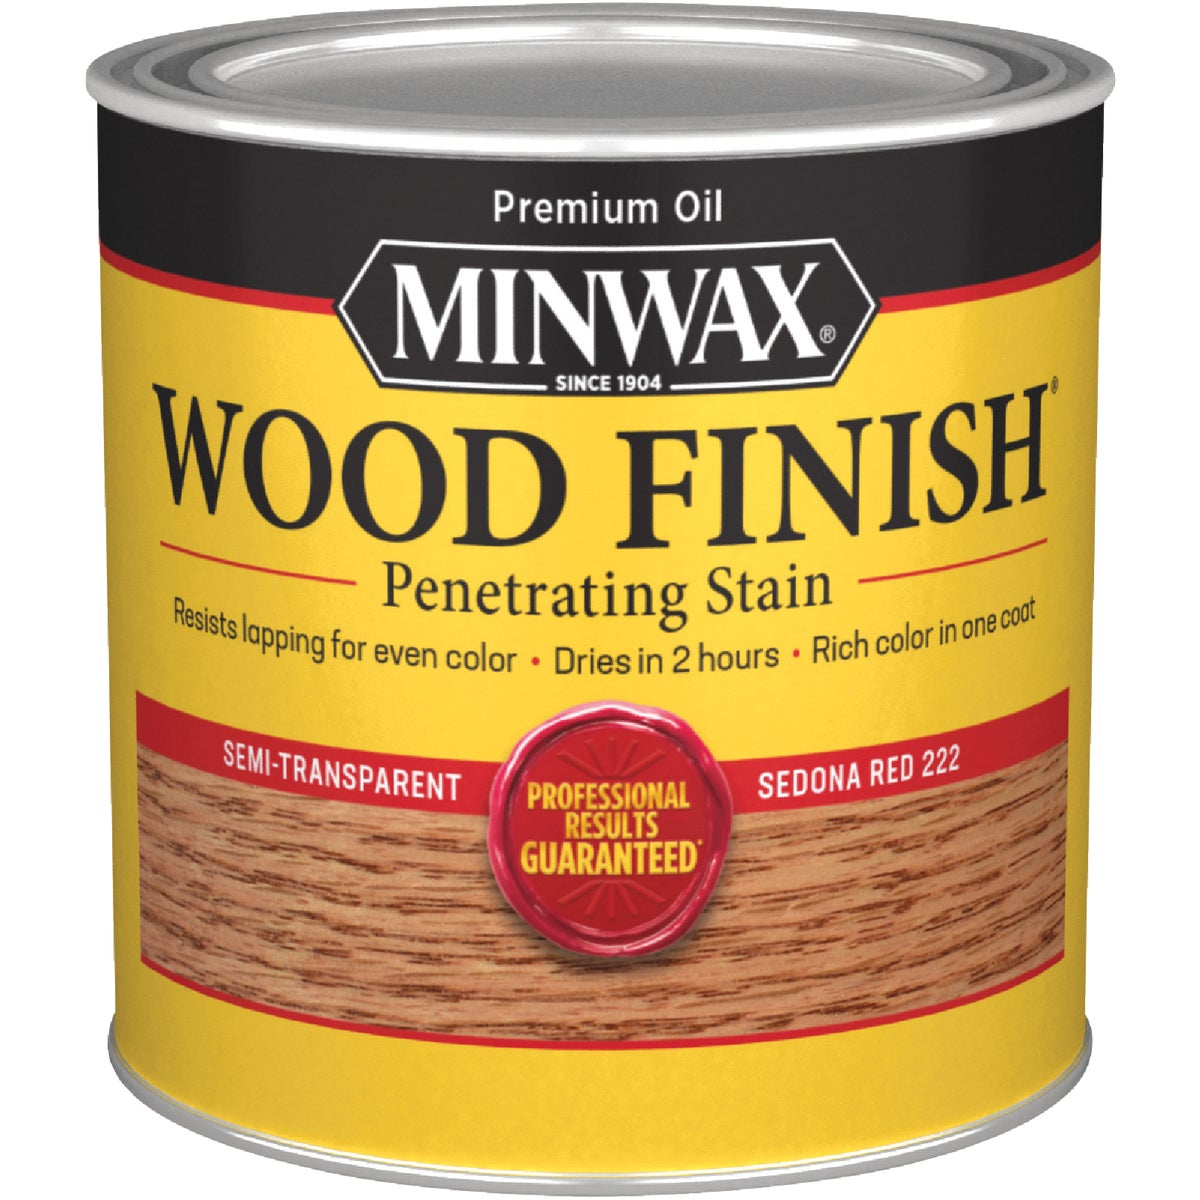 SEDONA RED WOOD STAIN - 222204444 by Minwax Company